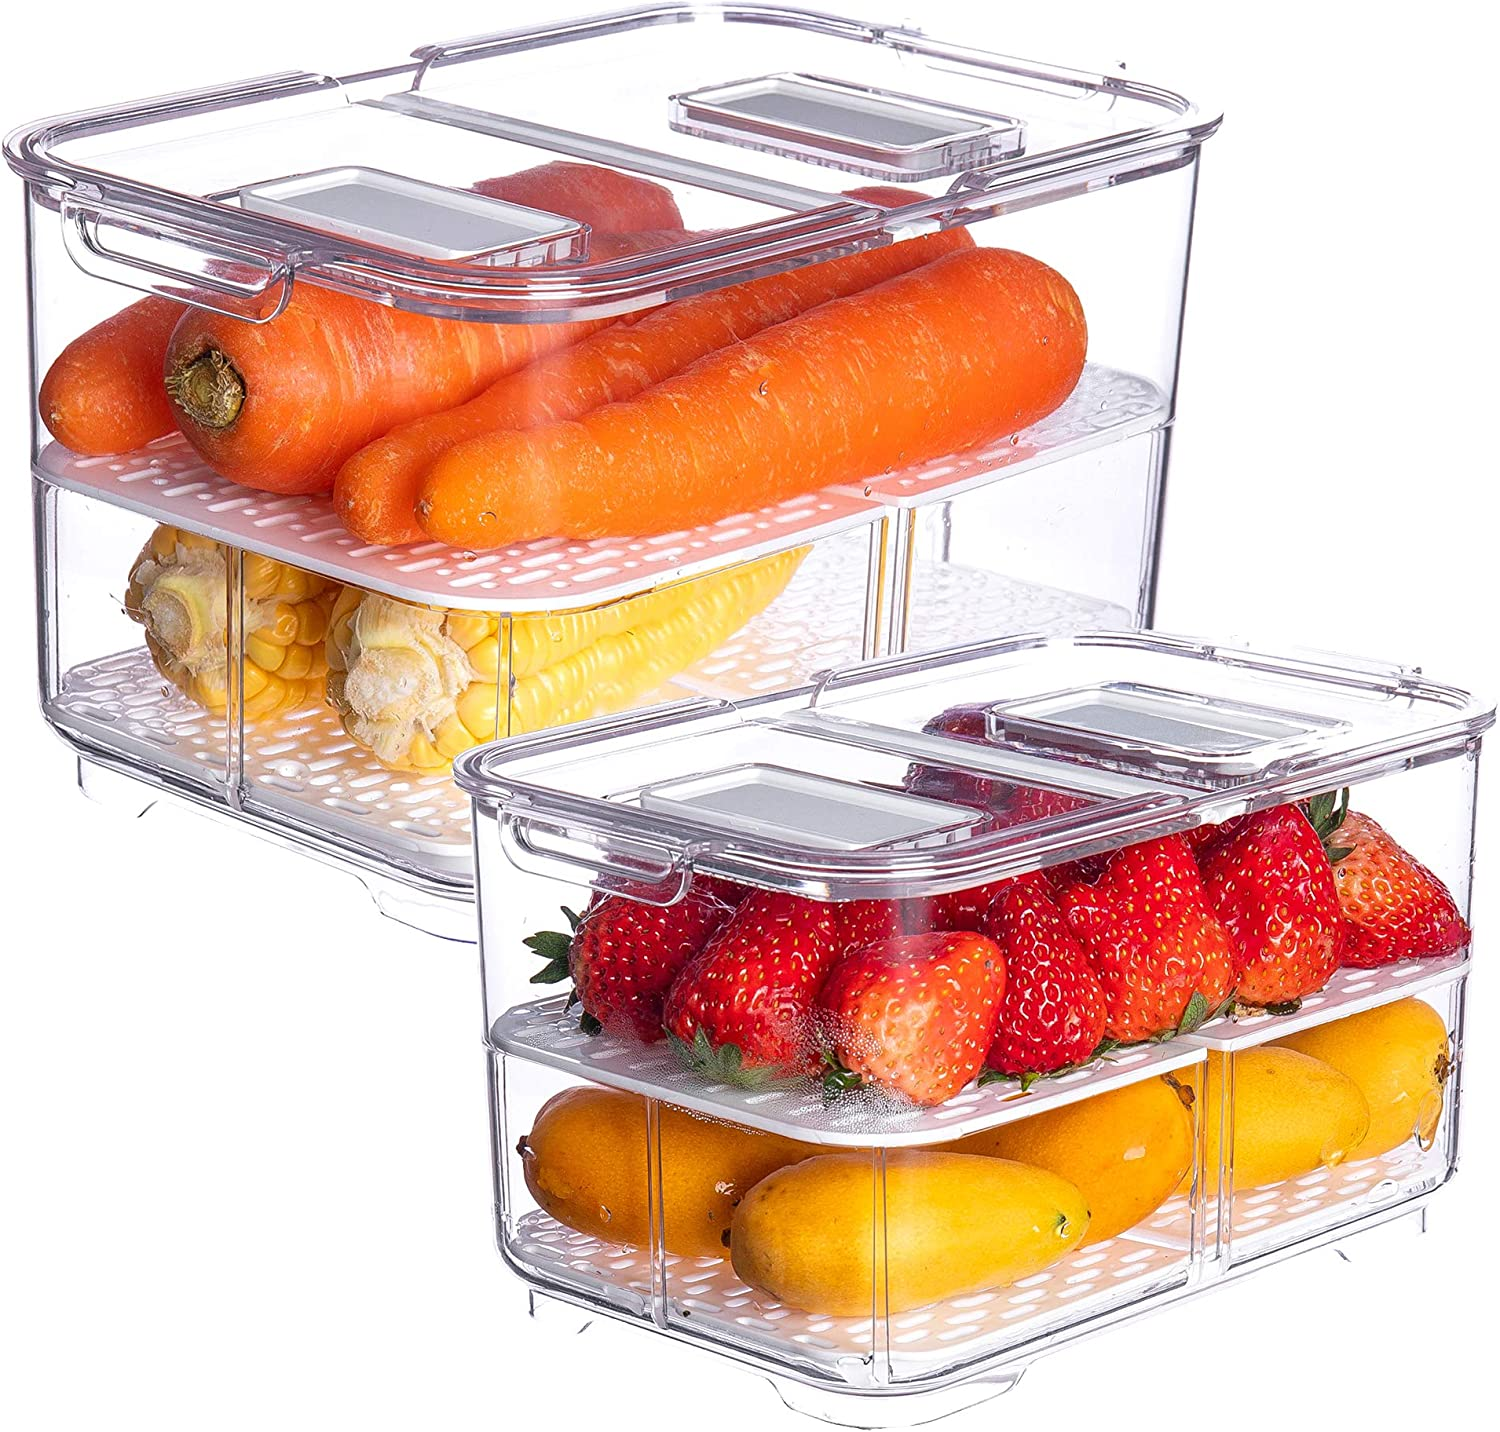 Vegetable Fruit Storage Containers,vacane 2 Piece Set Fresh Produce Saver with Lids and Vents,Partitioned Salad Lettuce Keeper for Refrigerator or Easy Carry,BPA-free Stay Fresh Containers,5.7L/2.8L